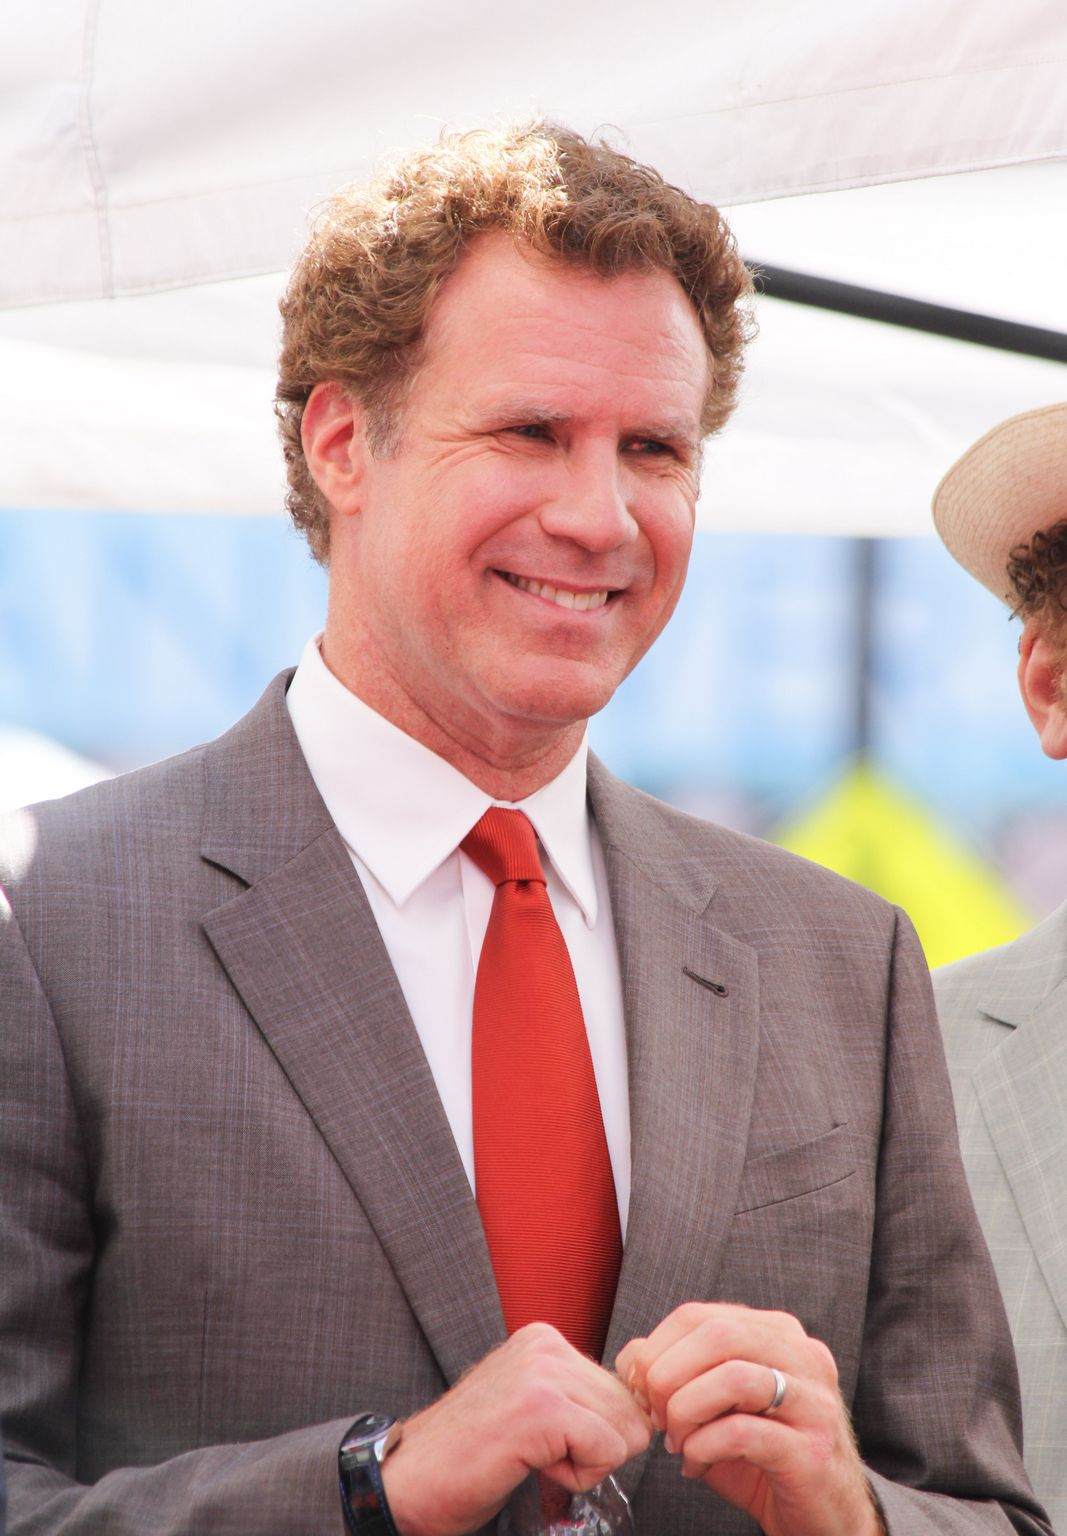 Will Ferrell At His Hollywood Walk Of Fame – Celeb Donut